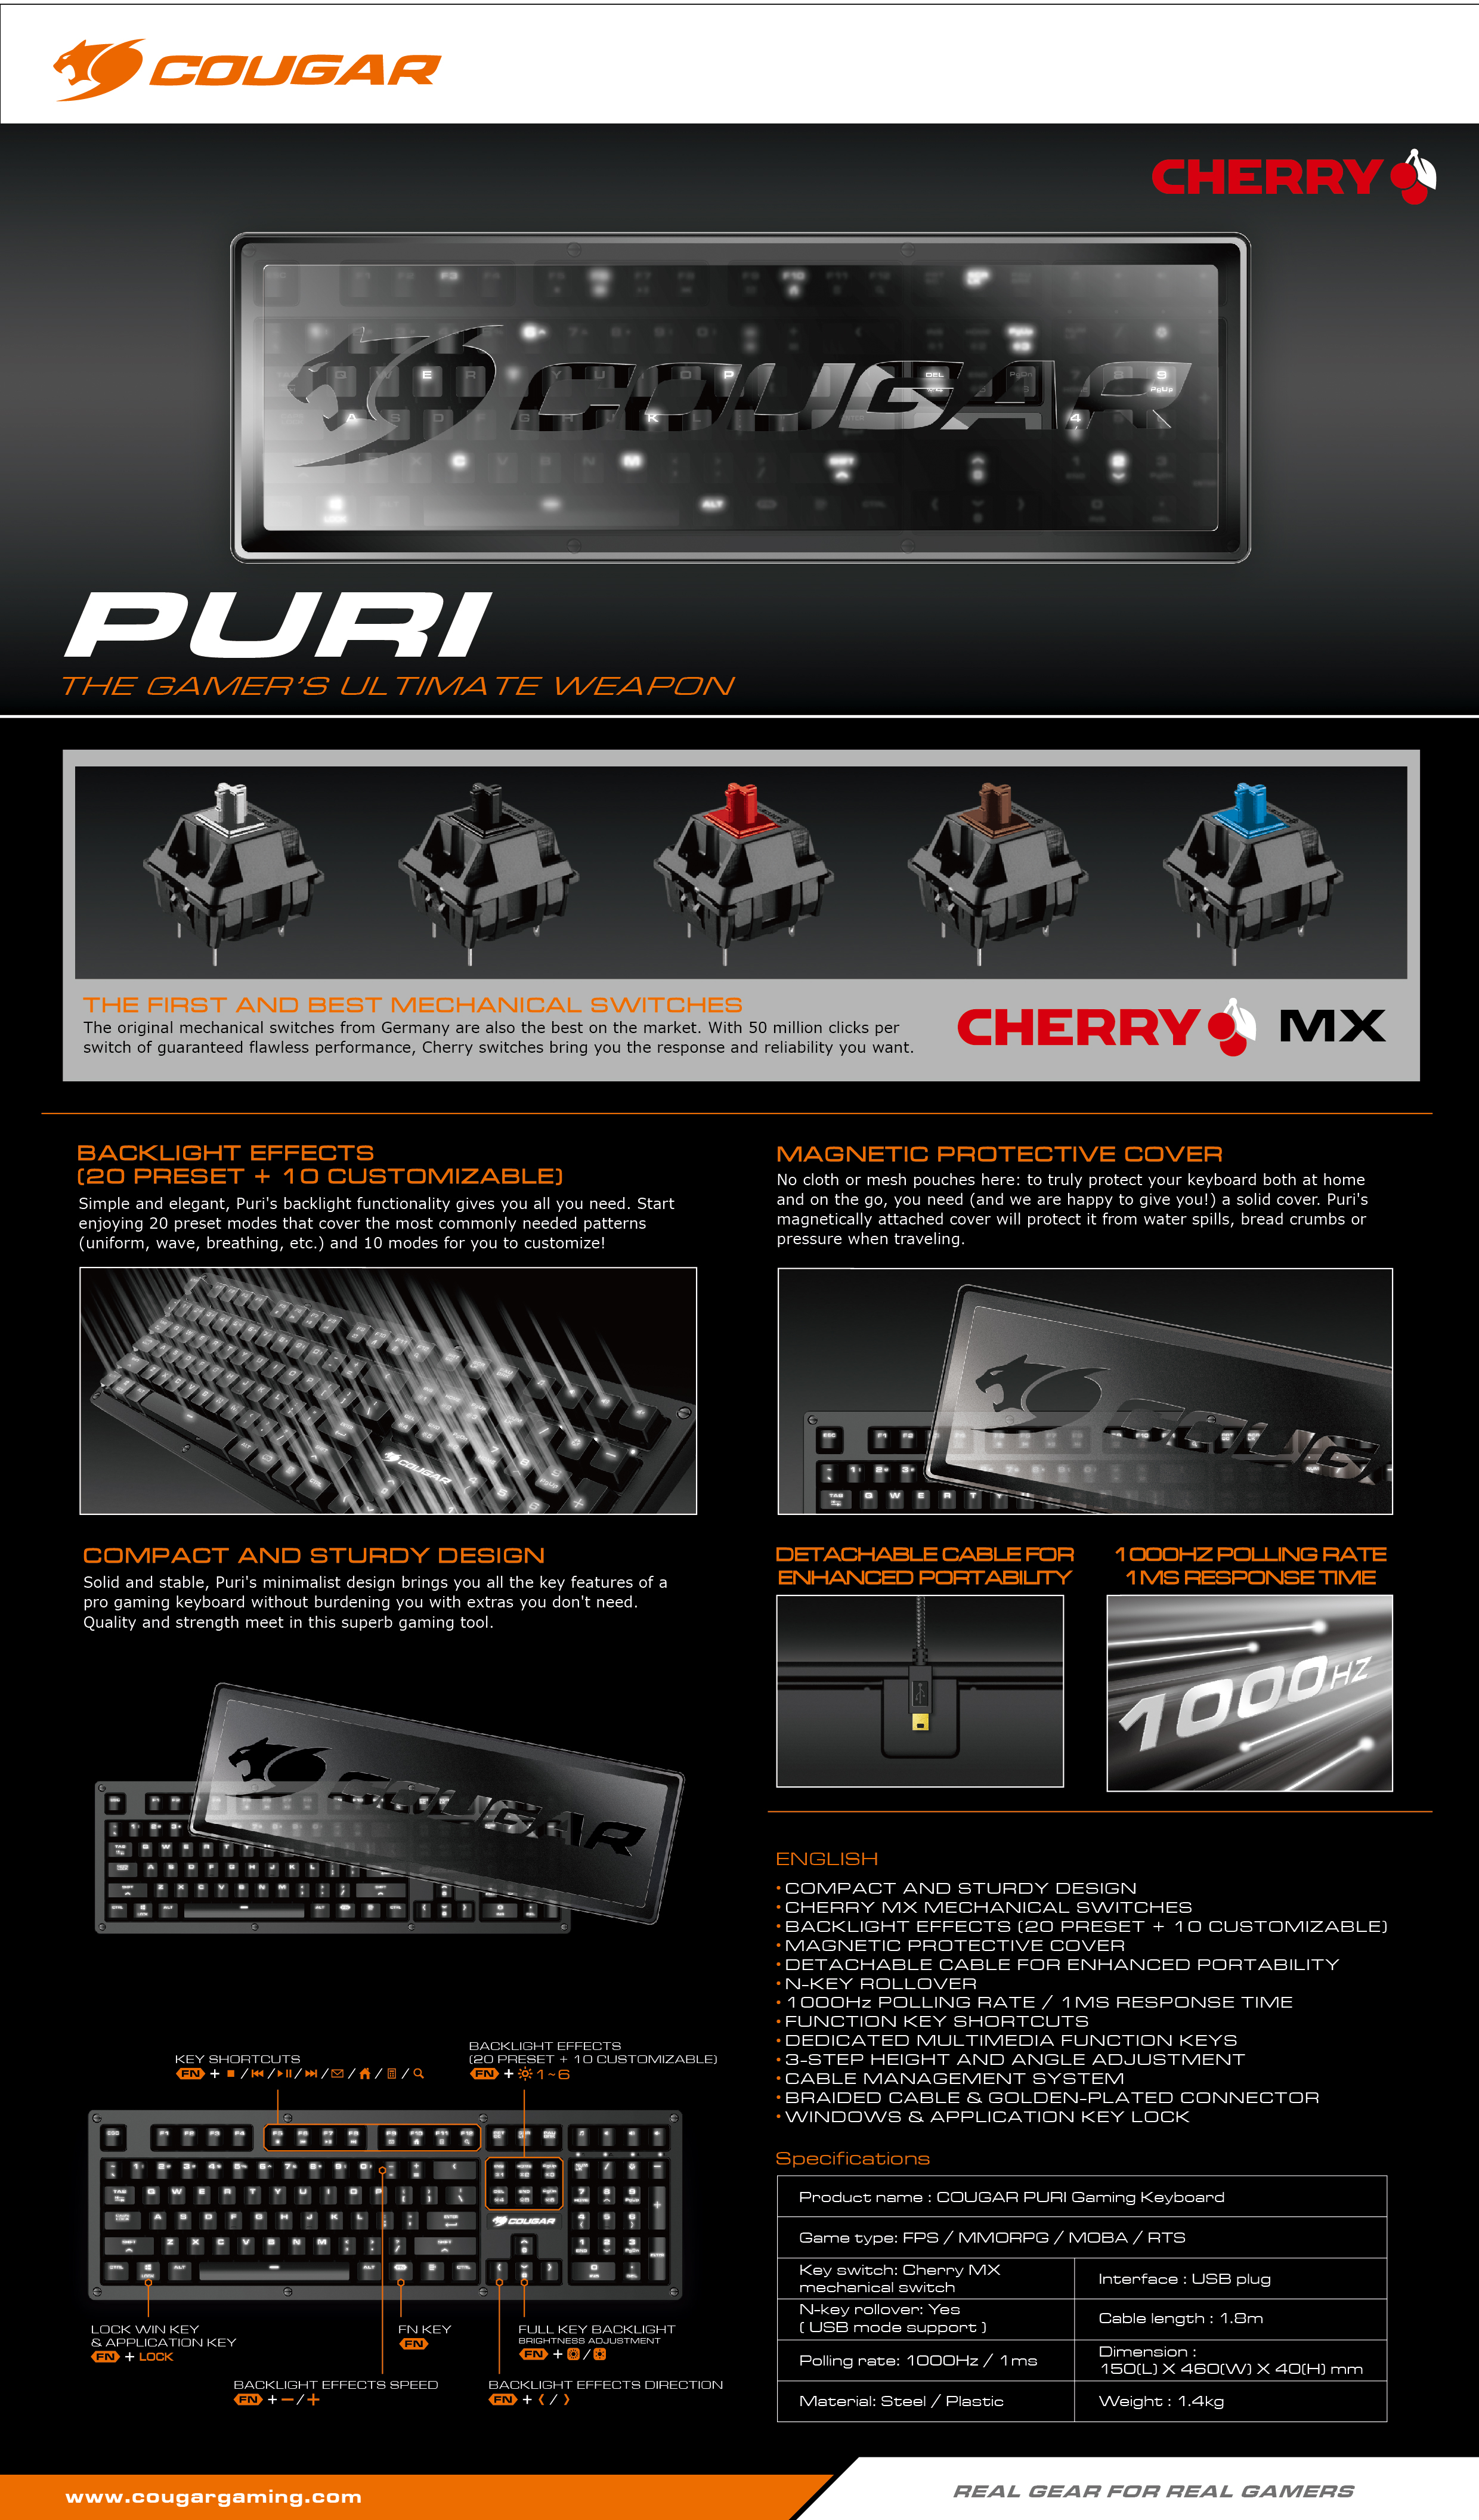 Cougar Puri Cherry Mx Mechanical Gaming Keyboard Rollover Cable Diagram This Black Is A Users Manual